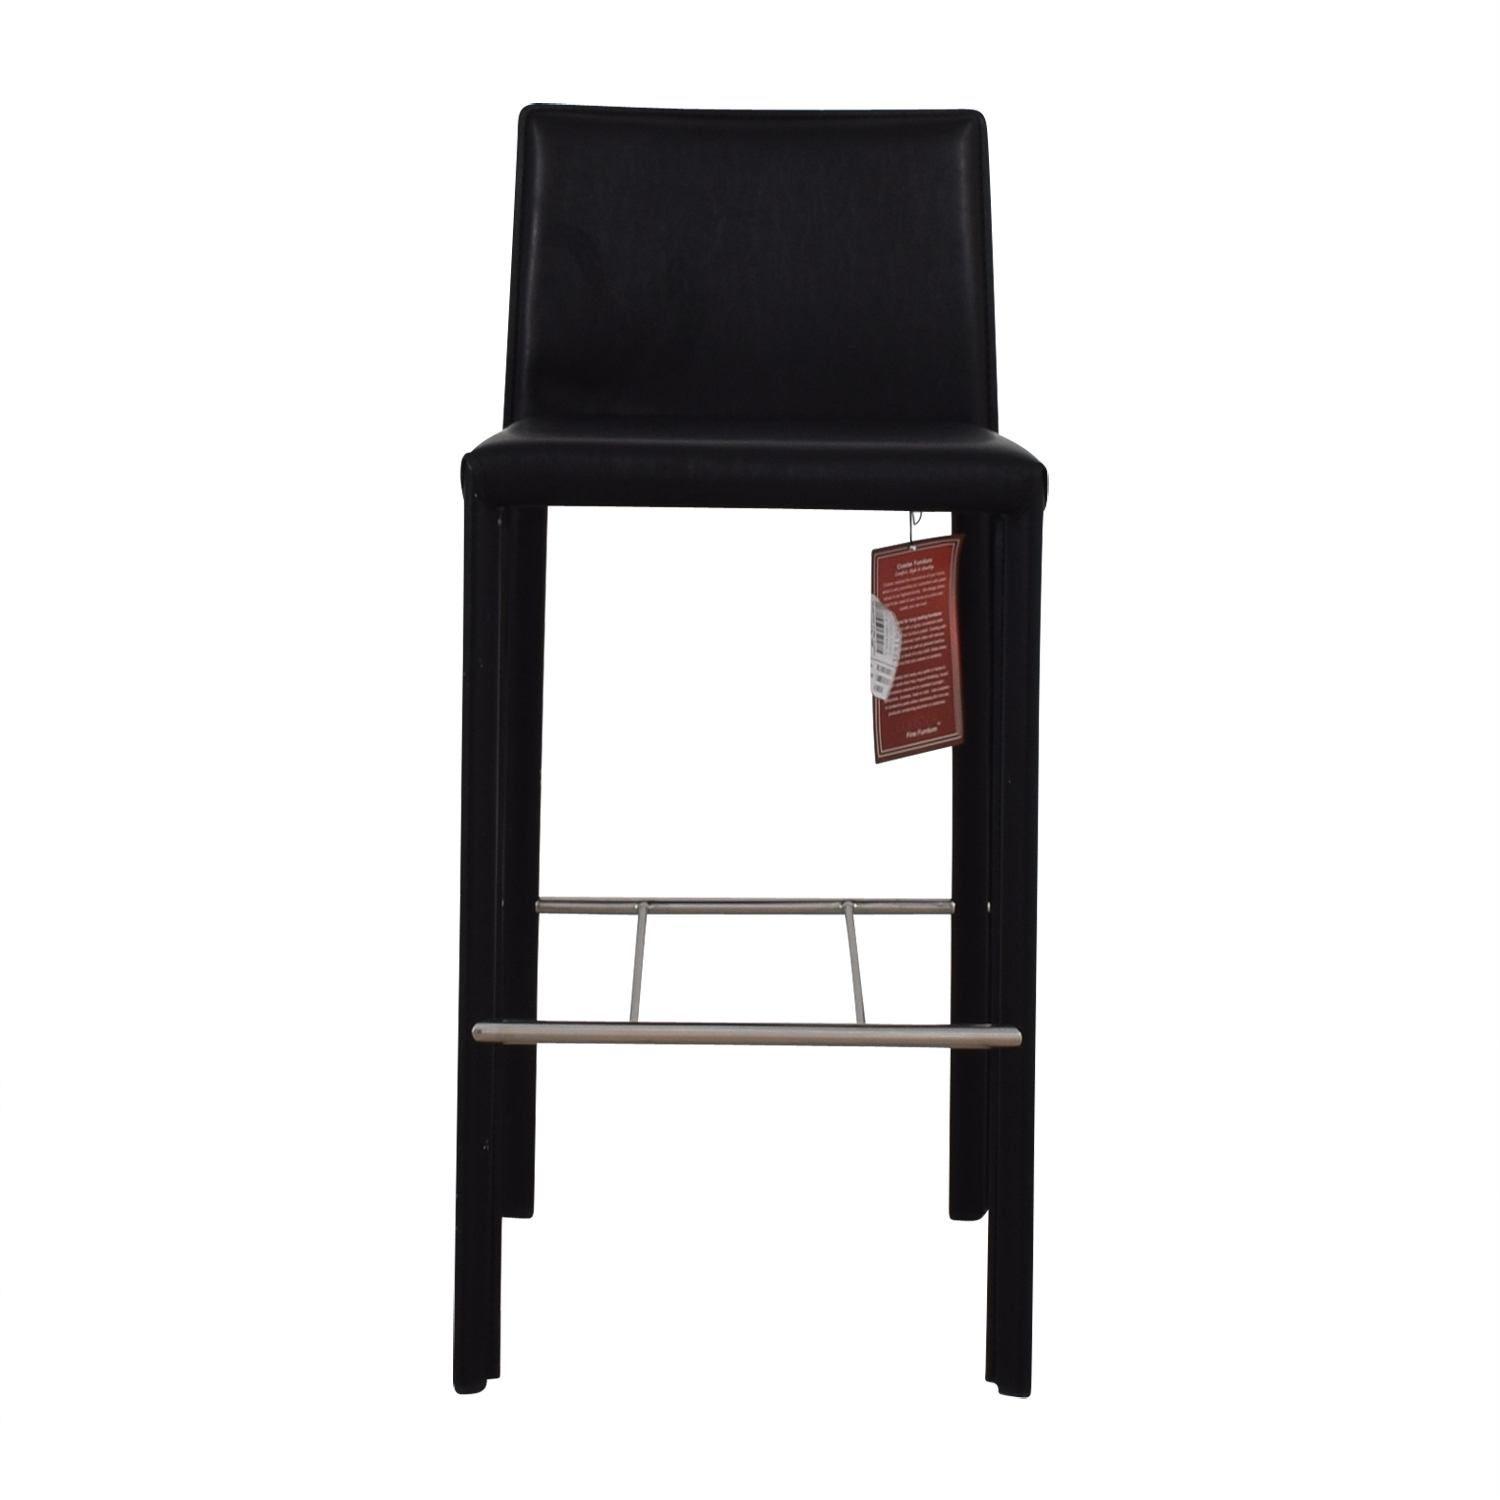 Coaster Coaster Modern Black Leatherette Bar Chair discount